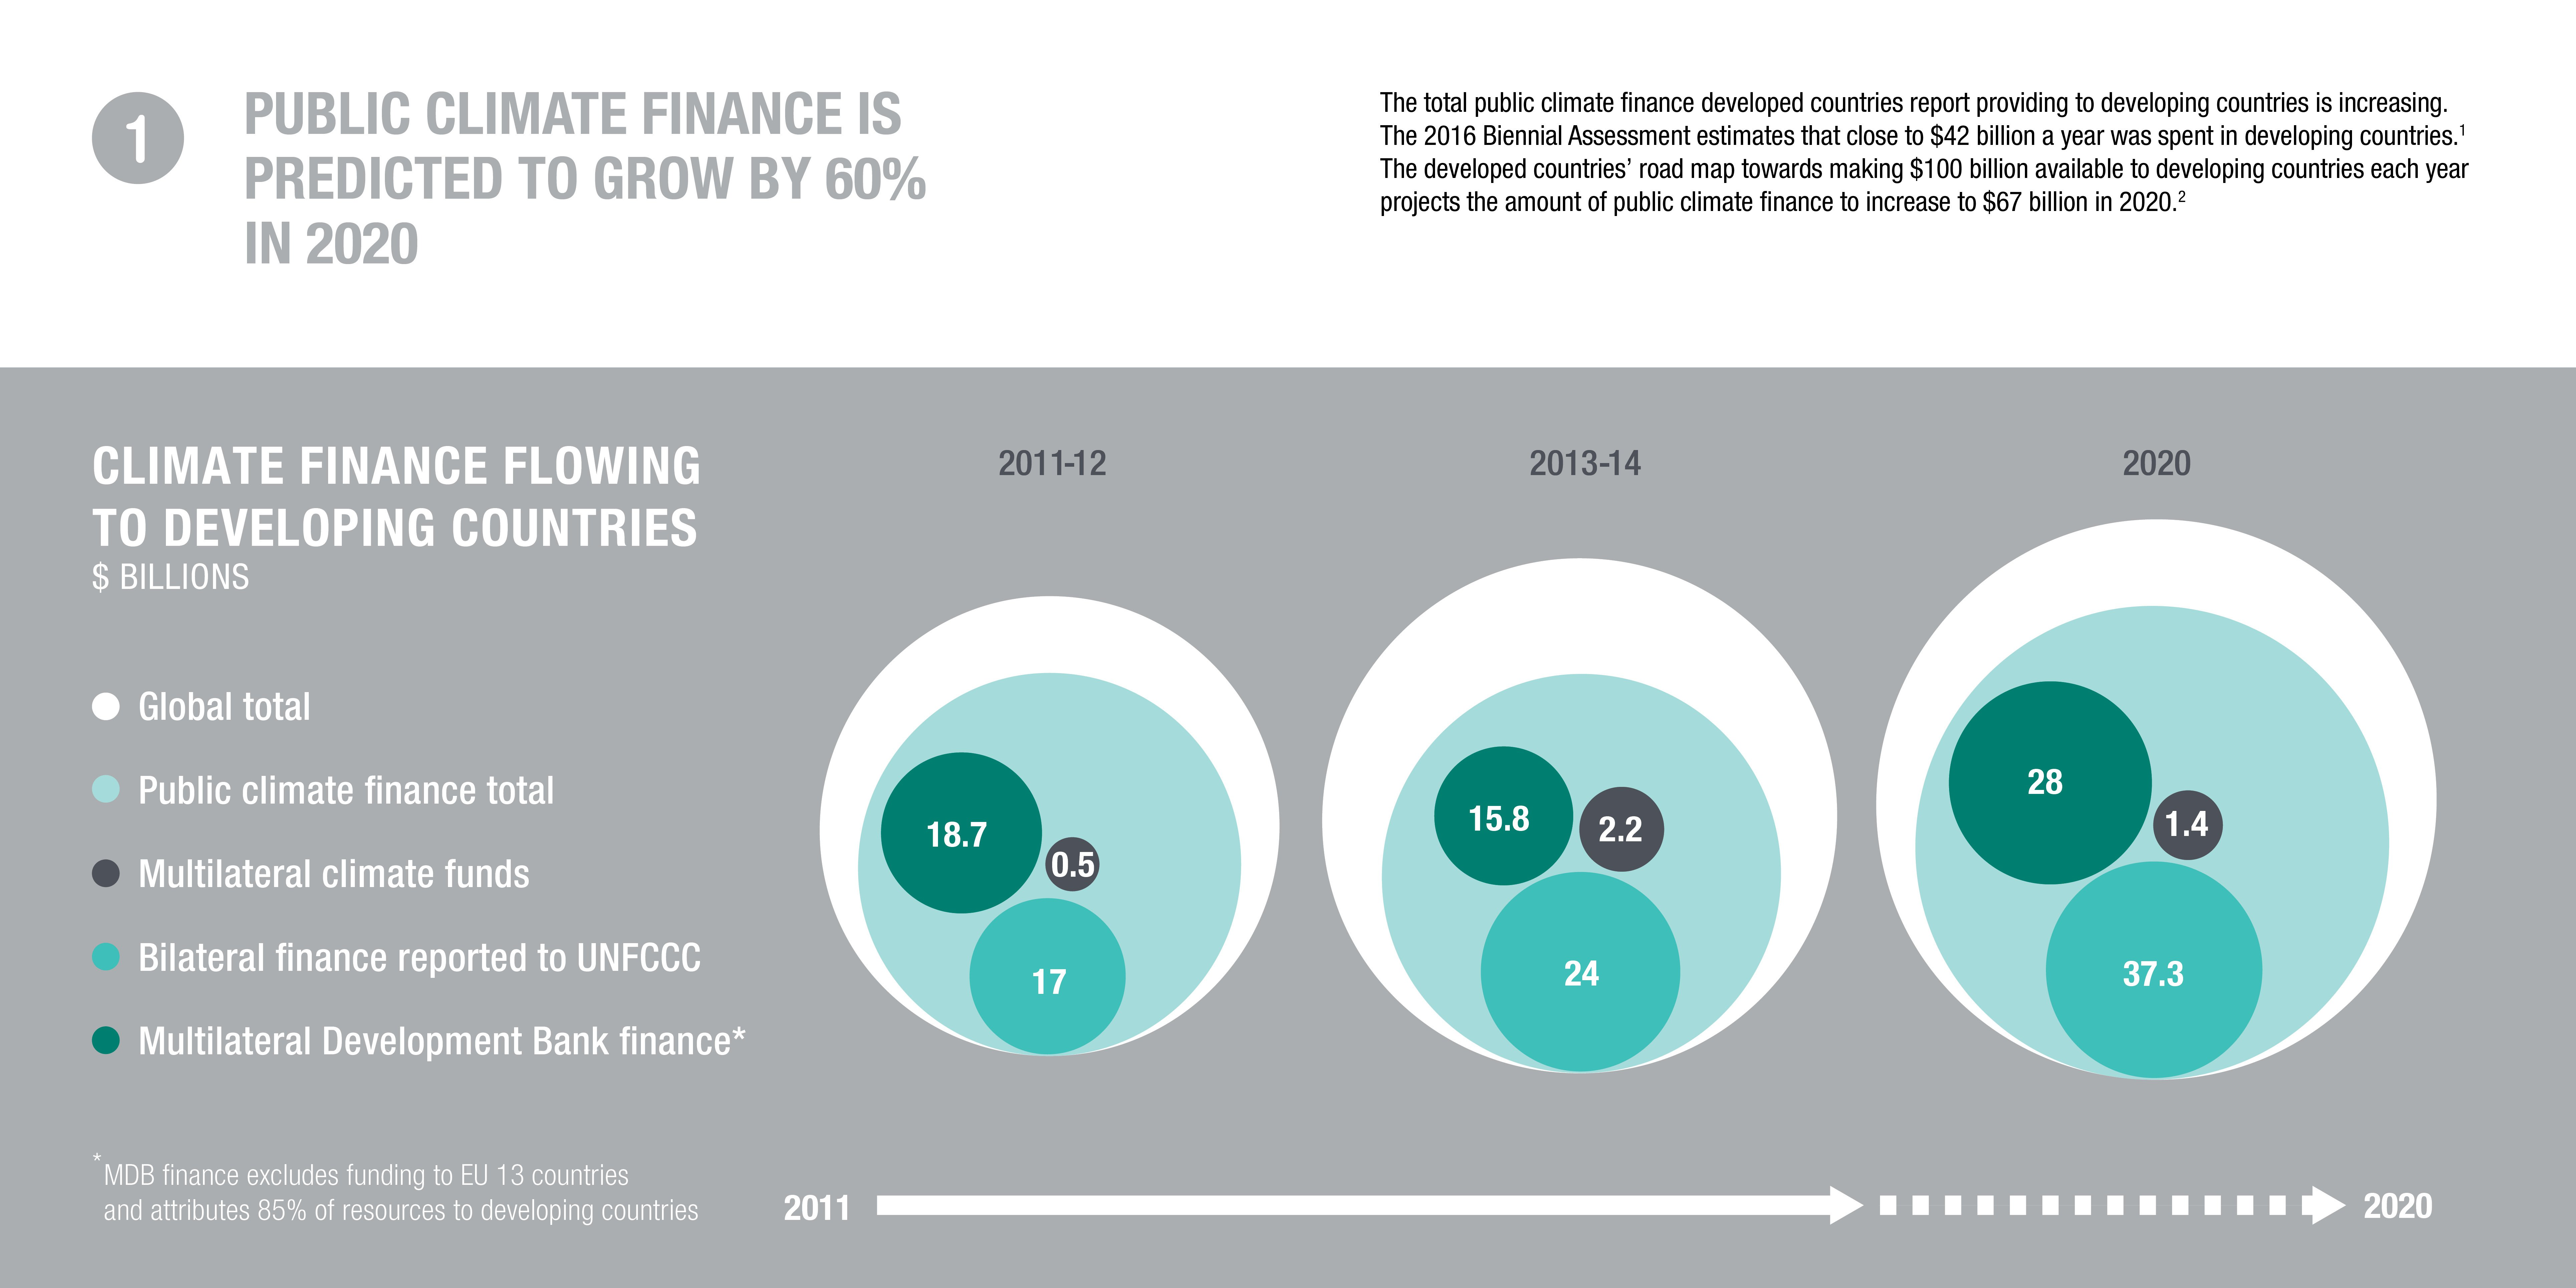 Infographic: public climate finance is predicted to grow by 60% in 2020